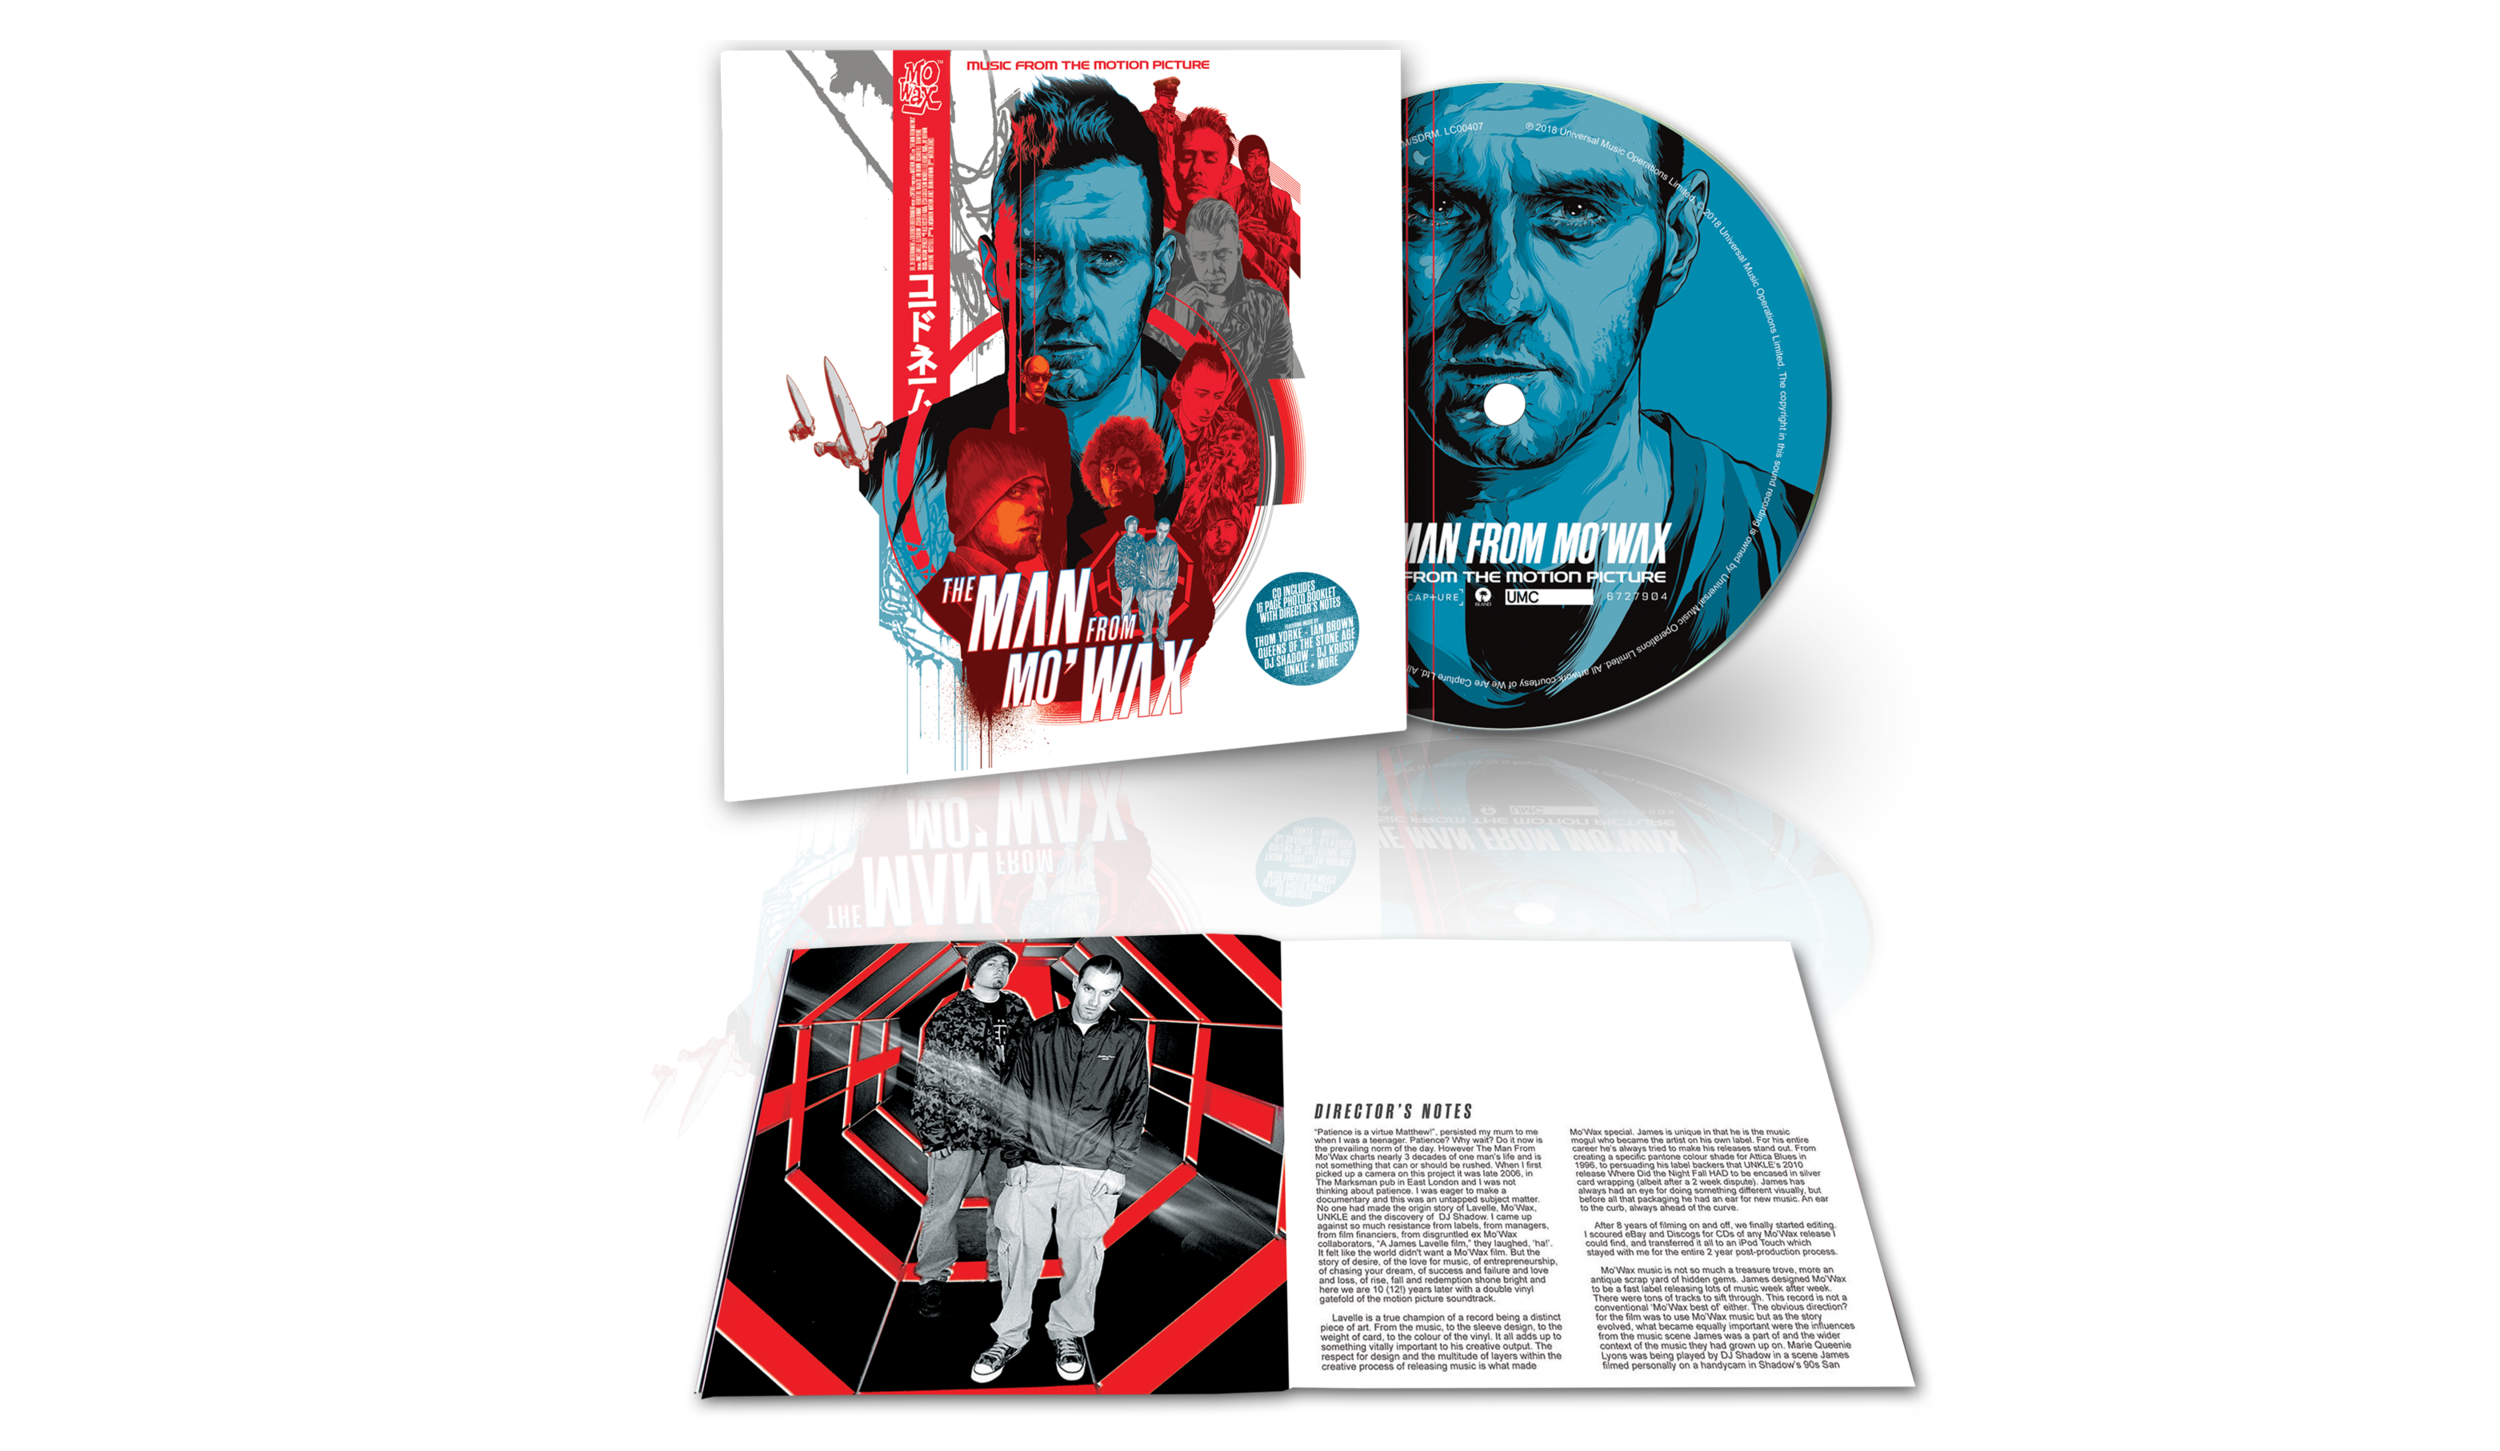 TMFMW_Soundtrack_CD_Mock-up_v2.png